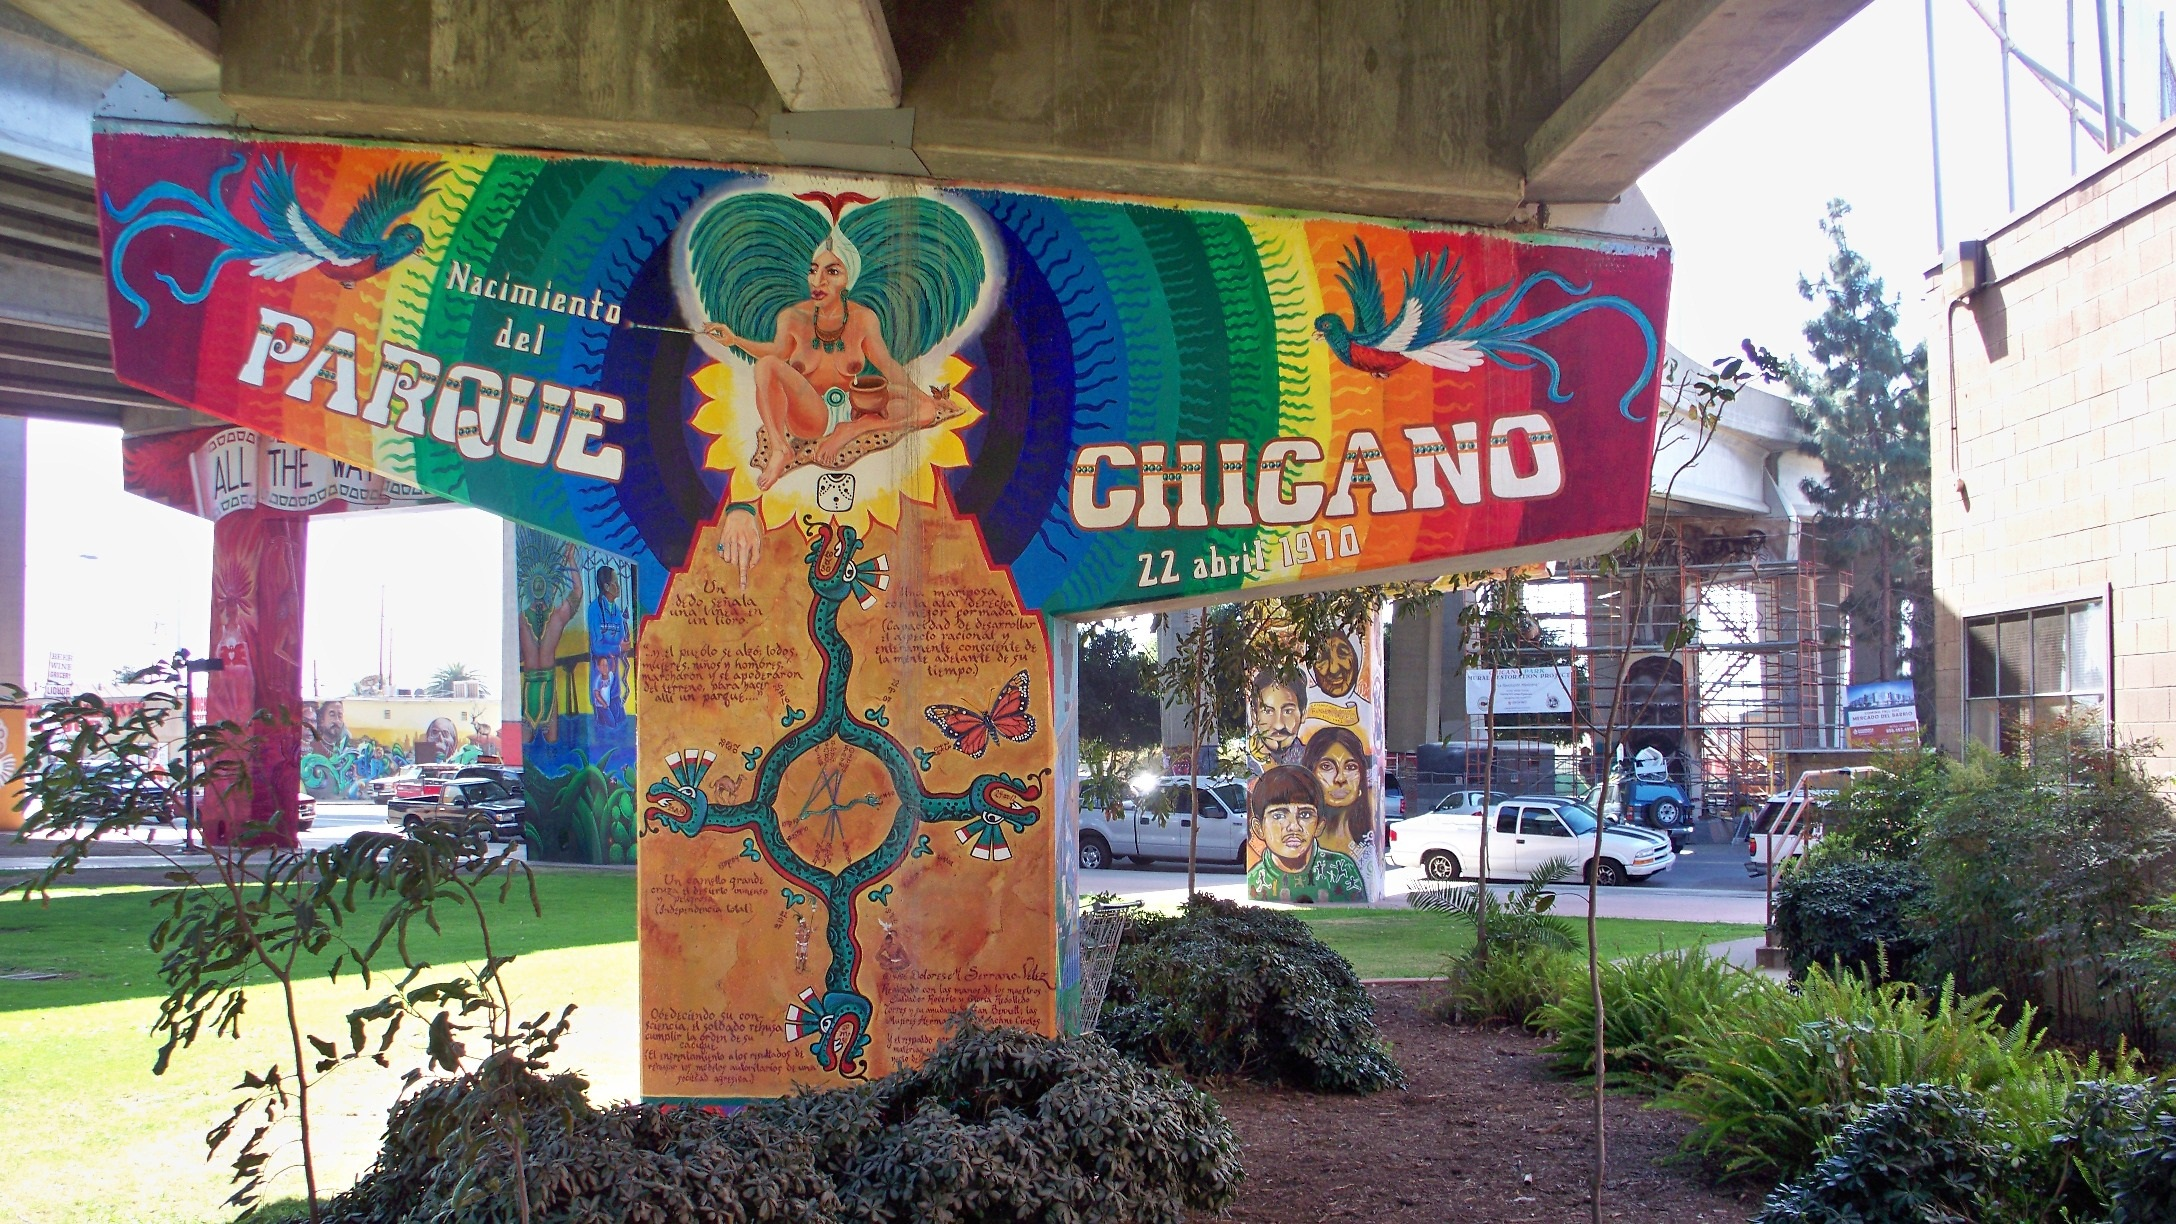 2012 actions taken for Chicano park mural